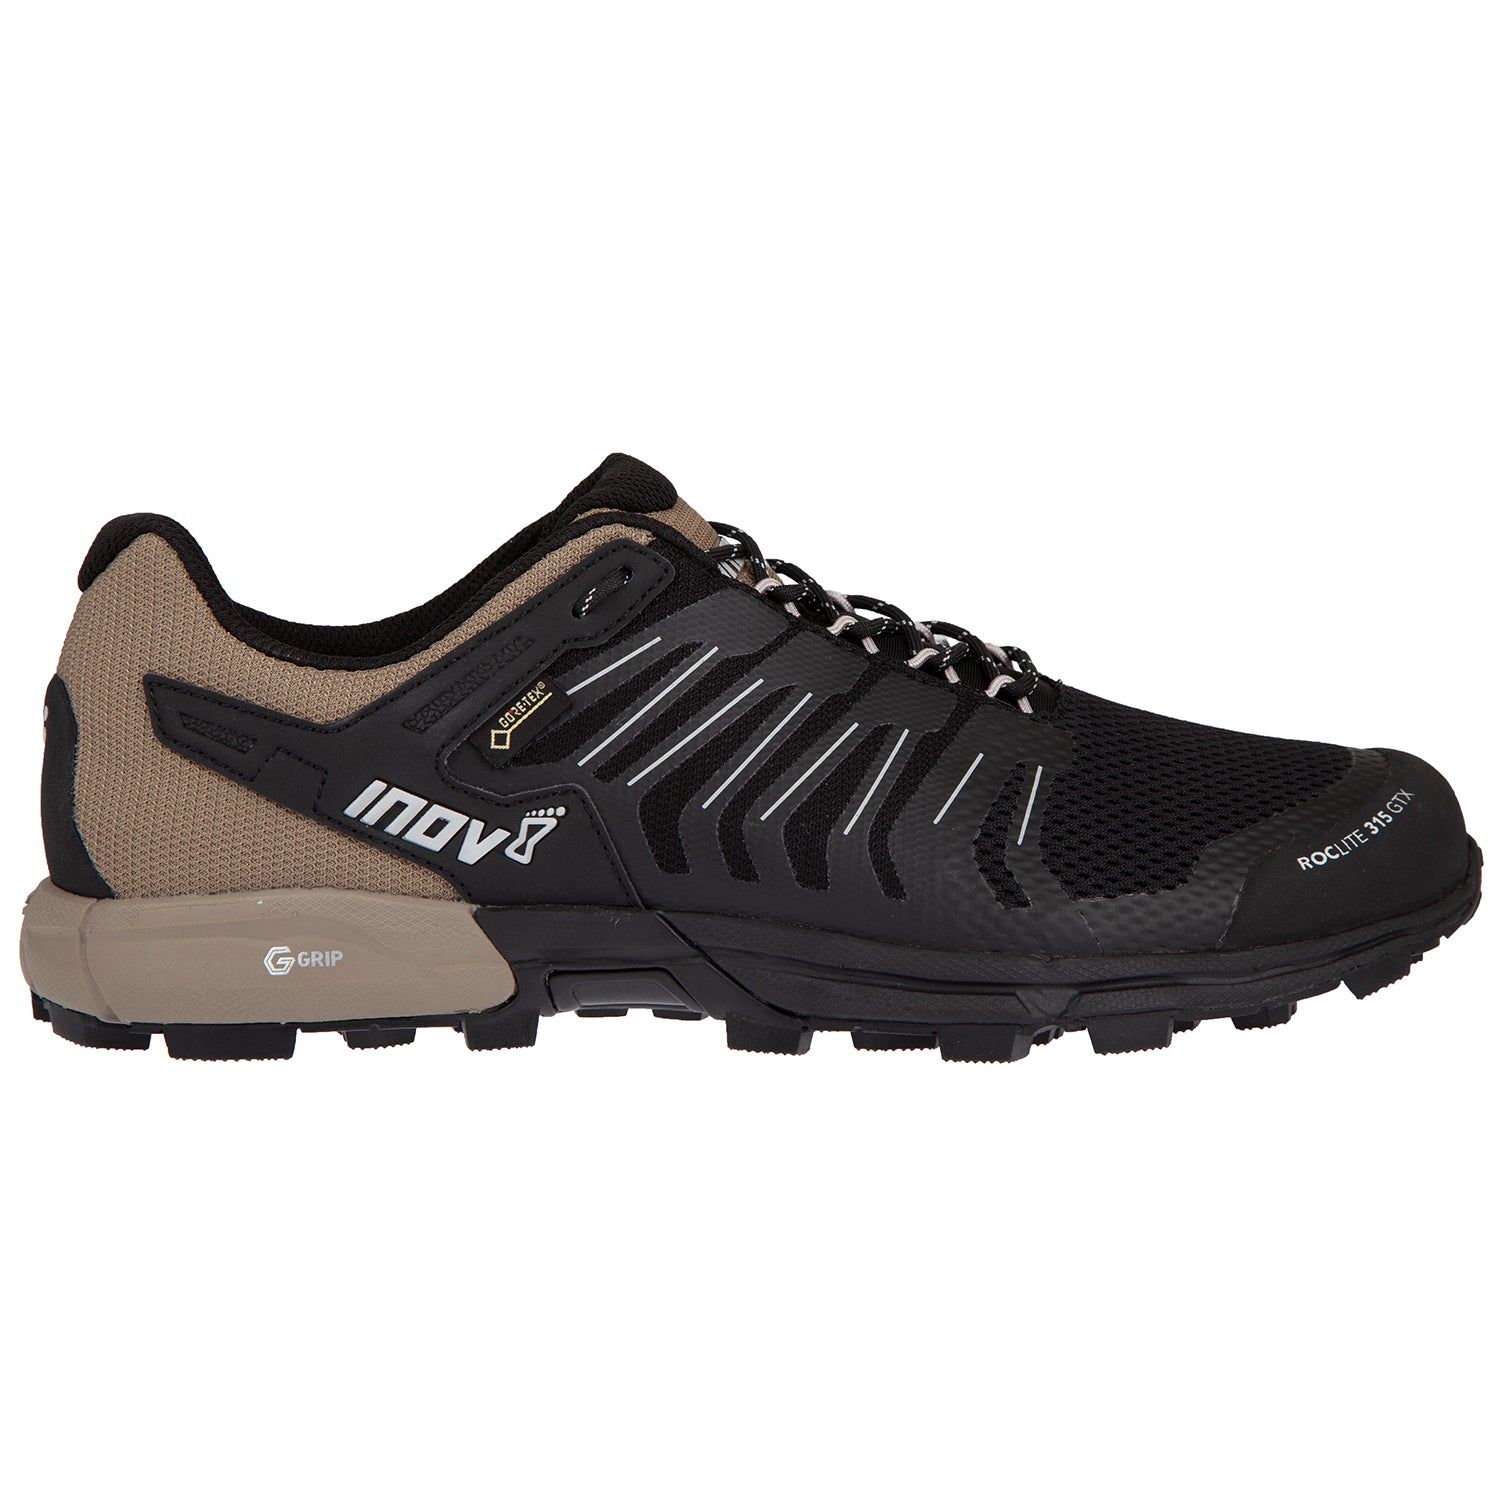 purchase cheap 790b7 00109 Footwear Running From amp Fitness Shoes aYwqYEr